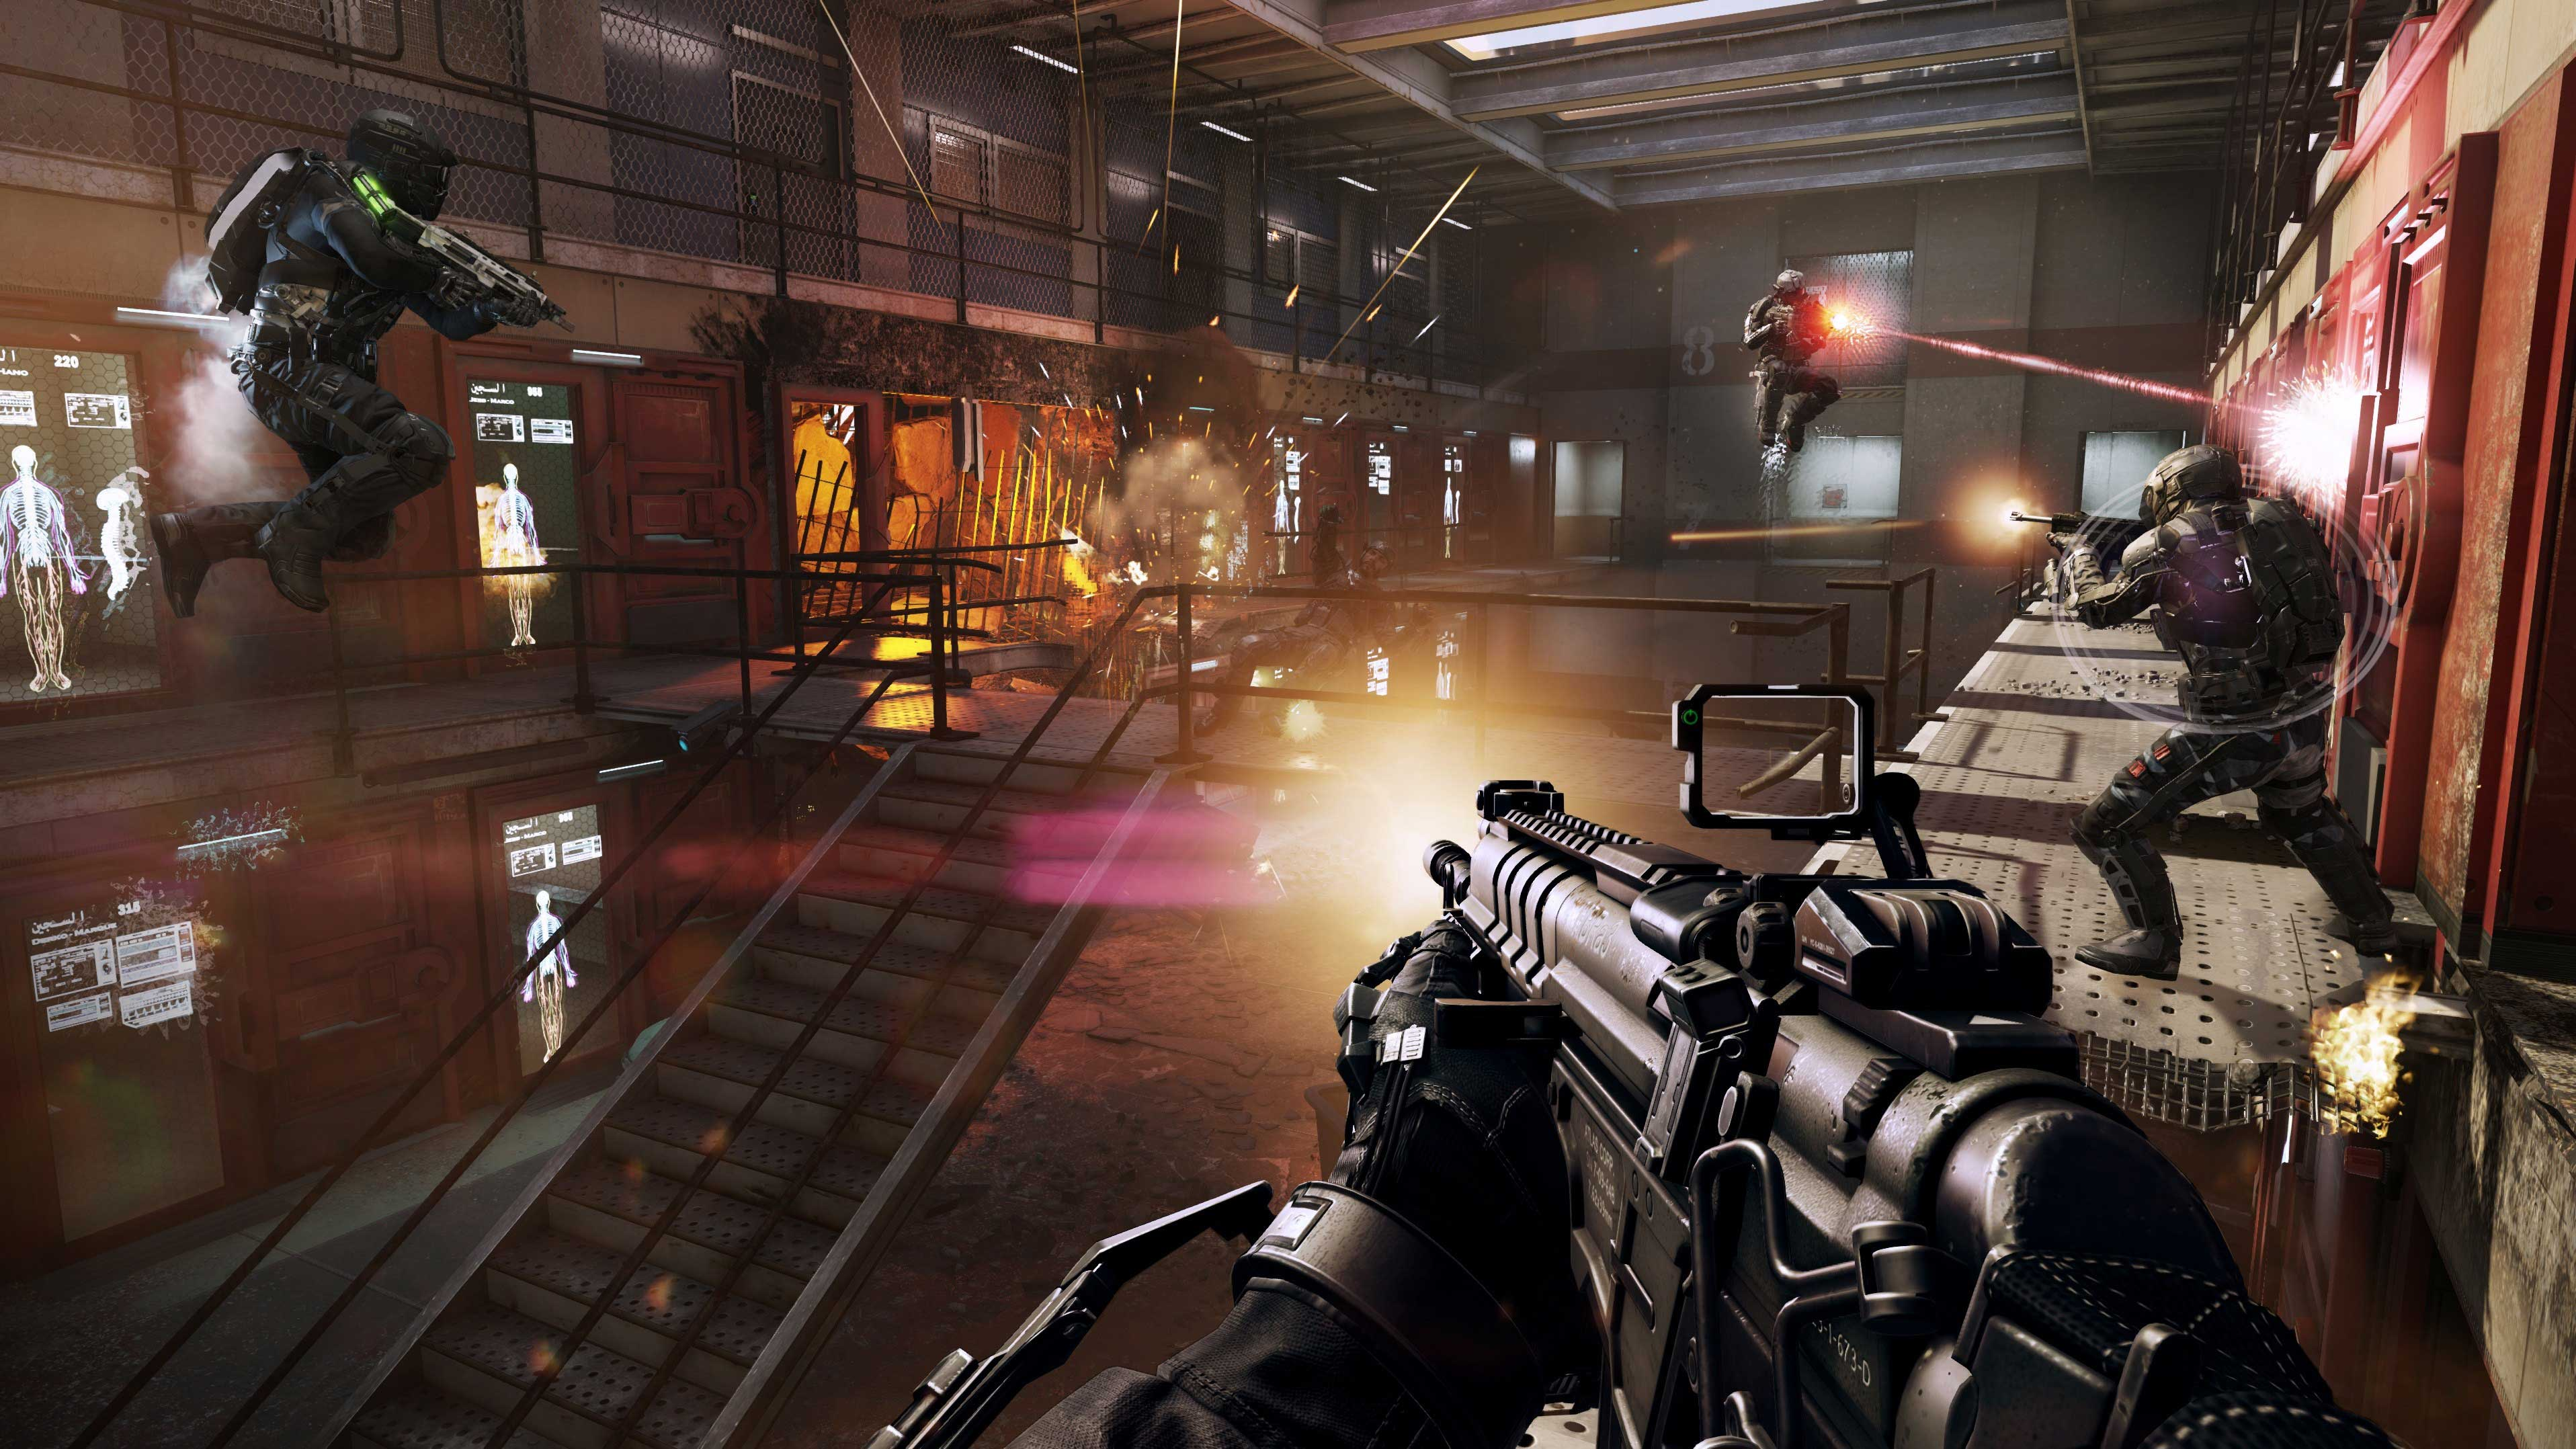 Image du jeu vidéo Call of Duty: Advanced Warfare